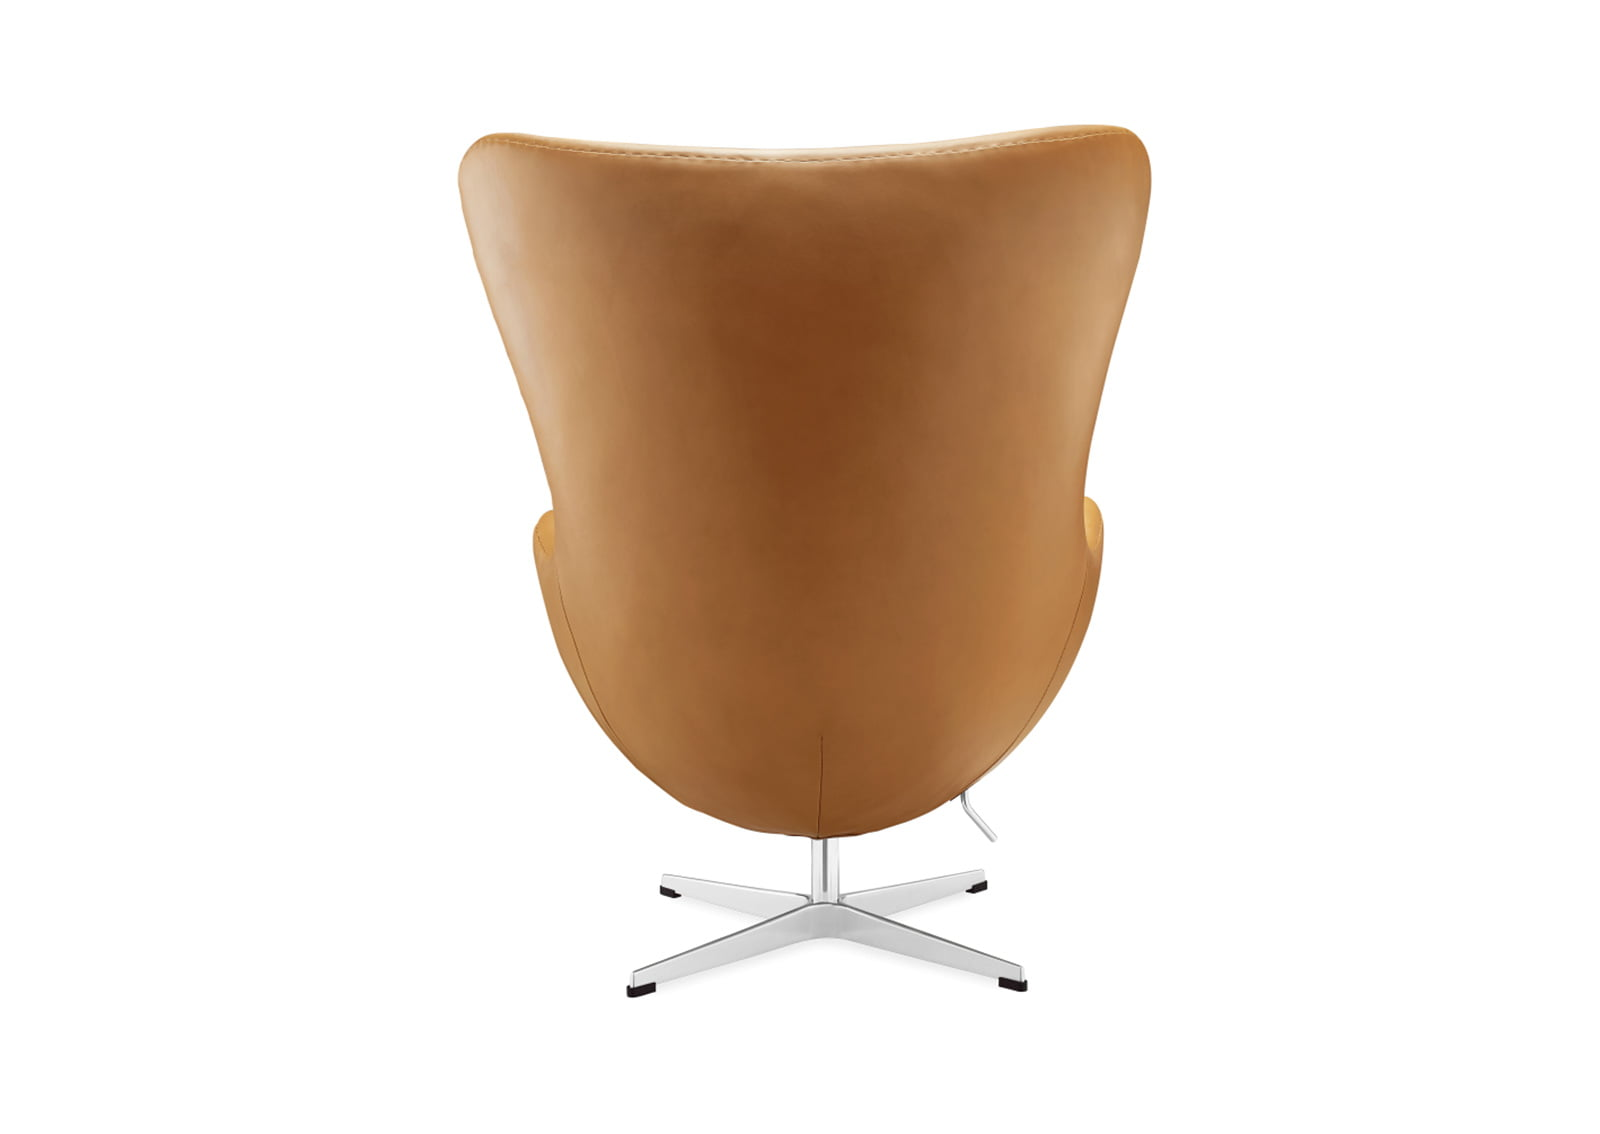 Affordable Egg Chair Egg Chair Furnishplus